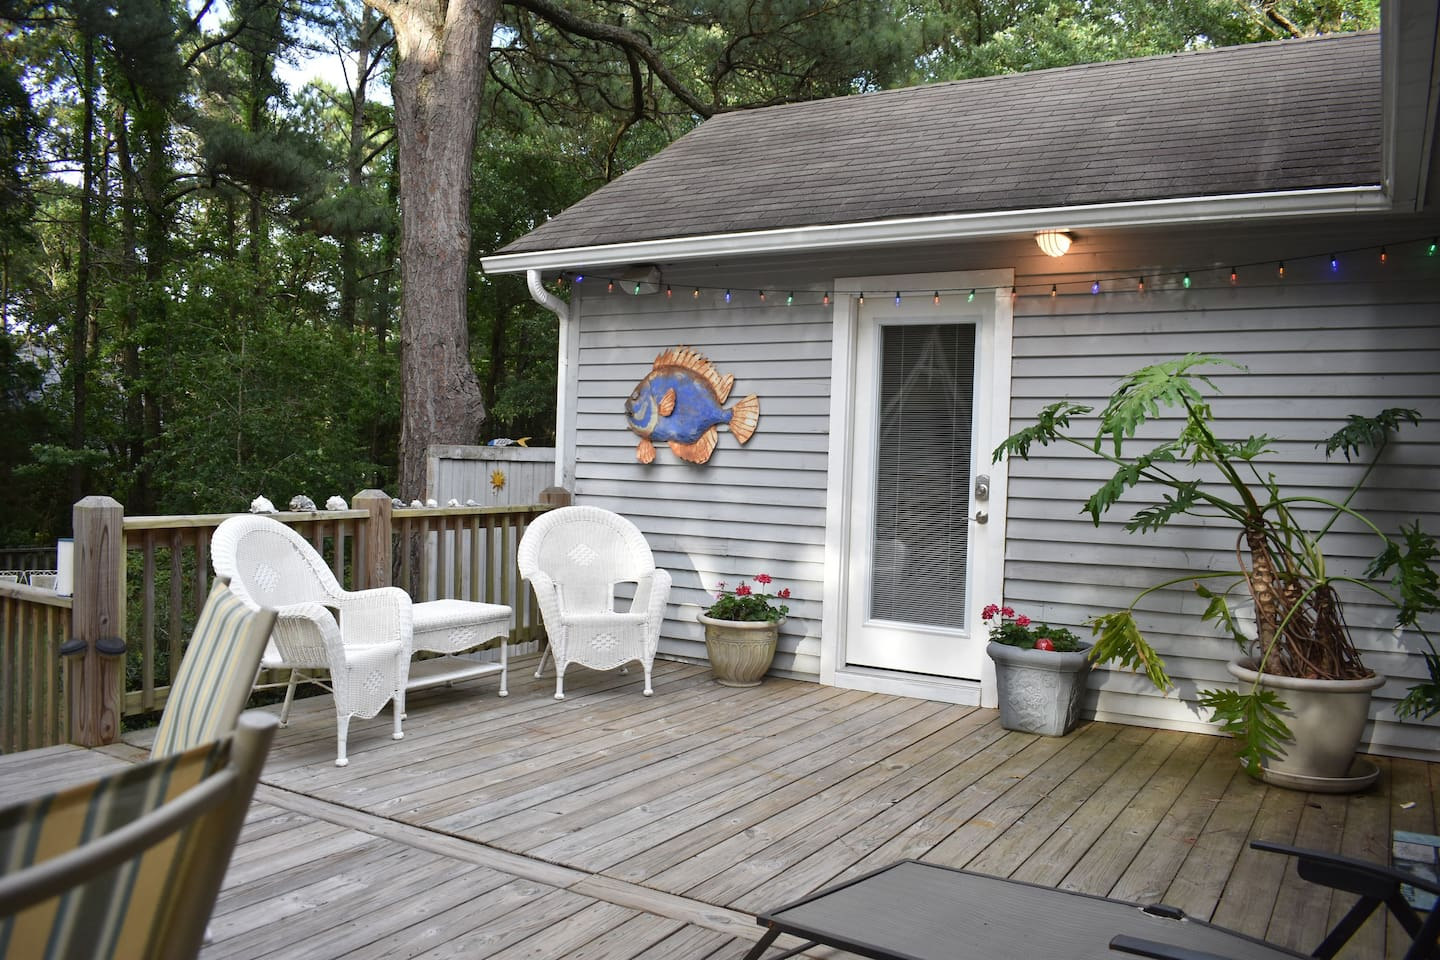 Welcome to BB's Bungalow with private entrance, large deck and outdoor shower!